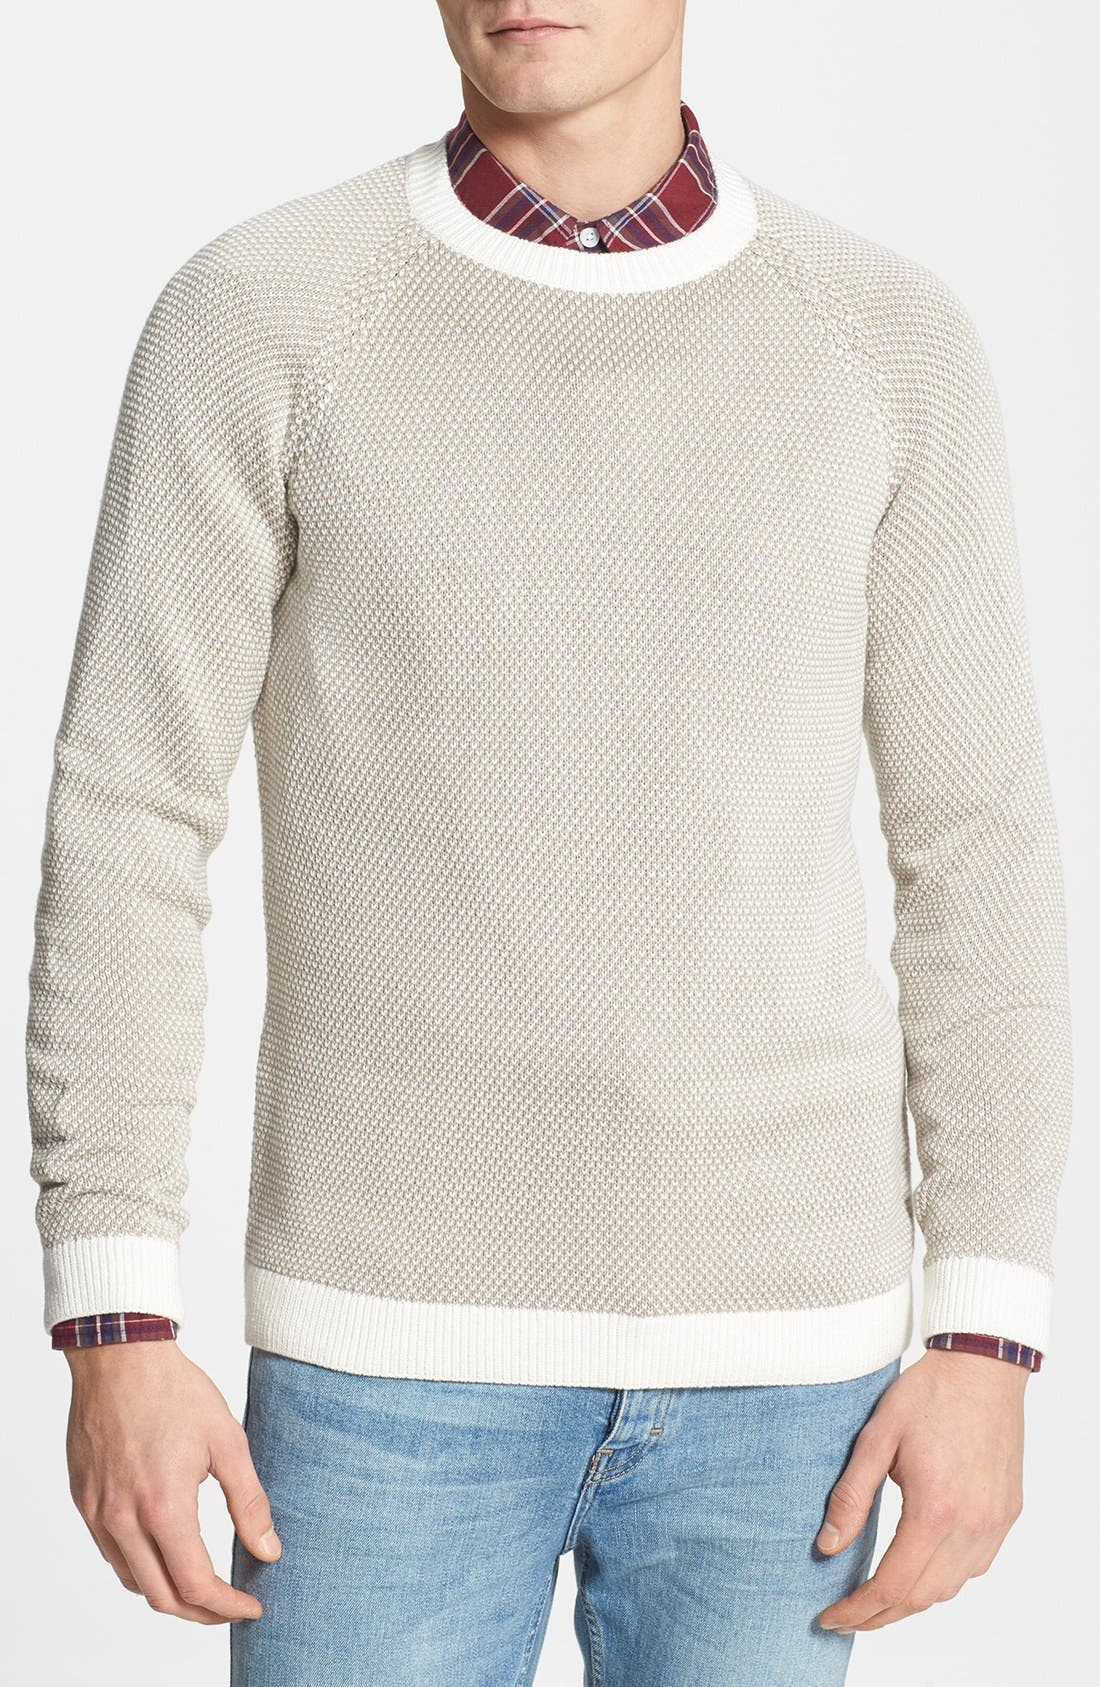 Alternate Image 1 Selected - Topman Reverse Knit Crewneck Sweater